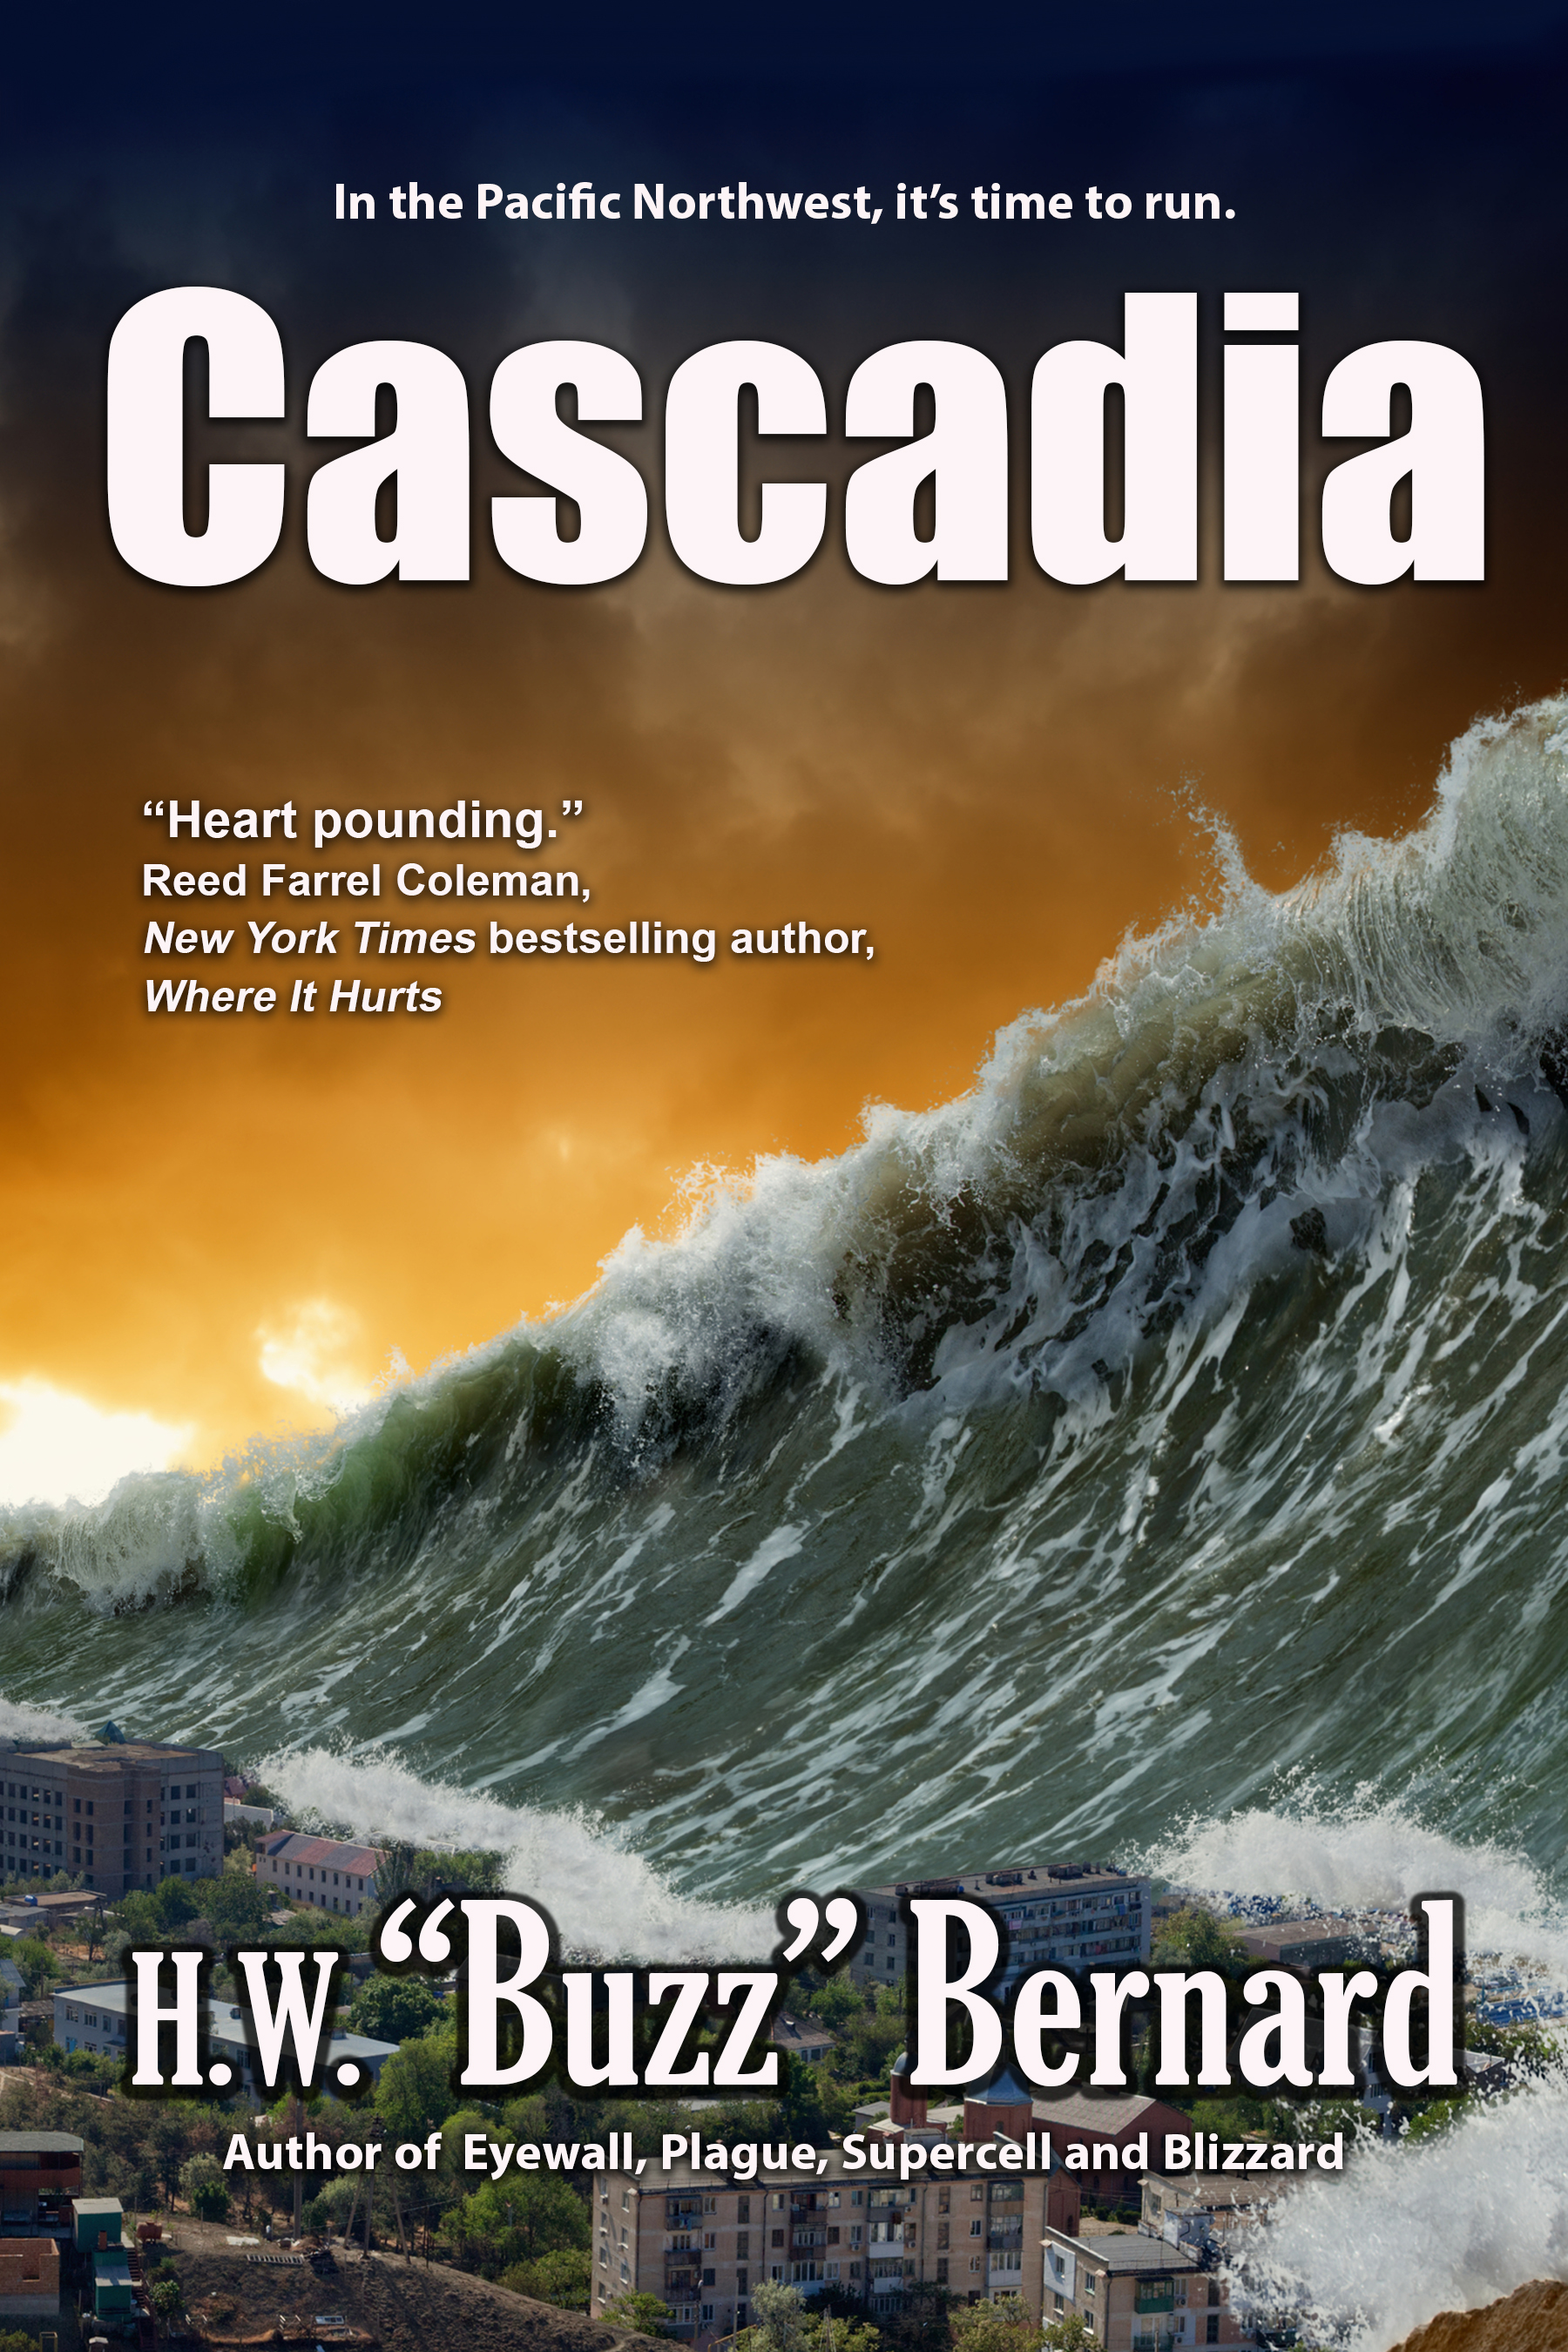 Cascadia by Buzz Bernard